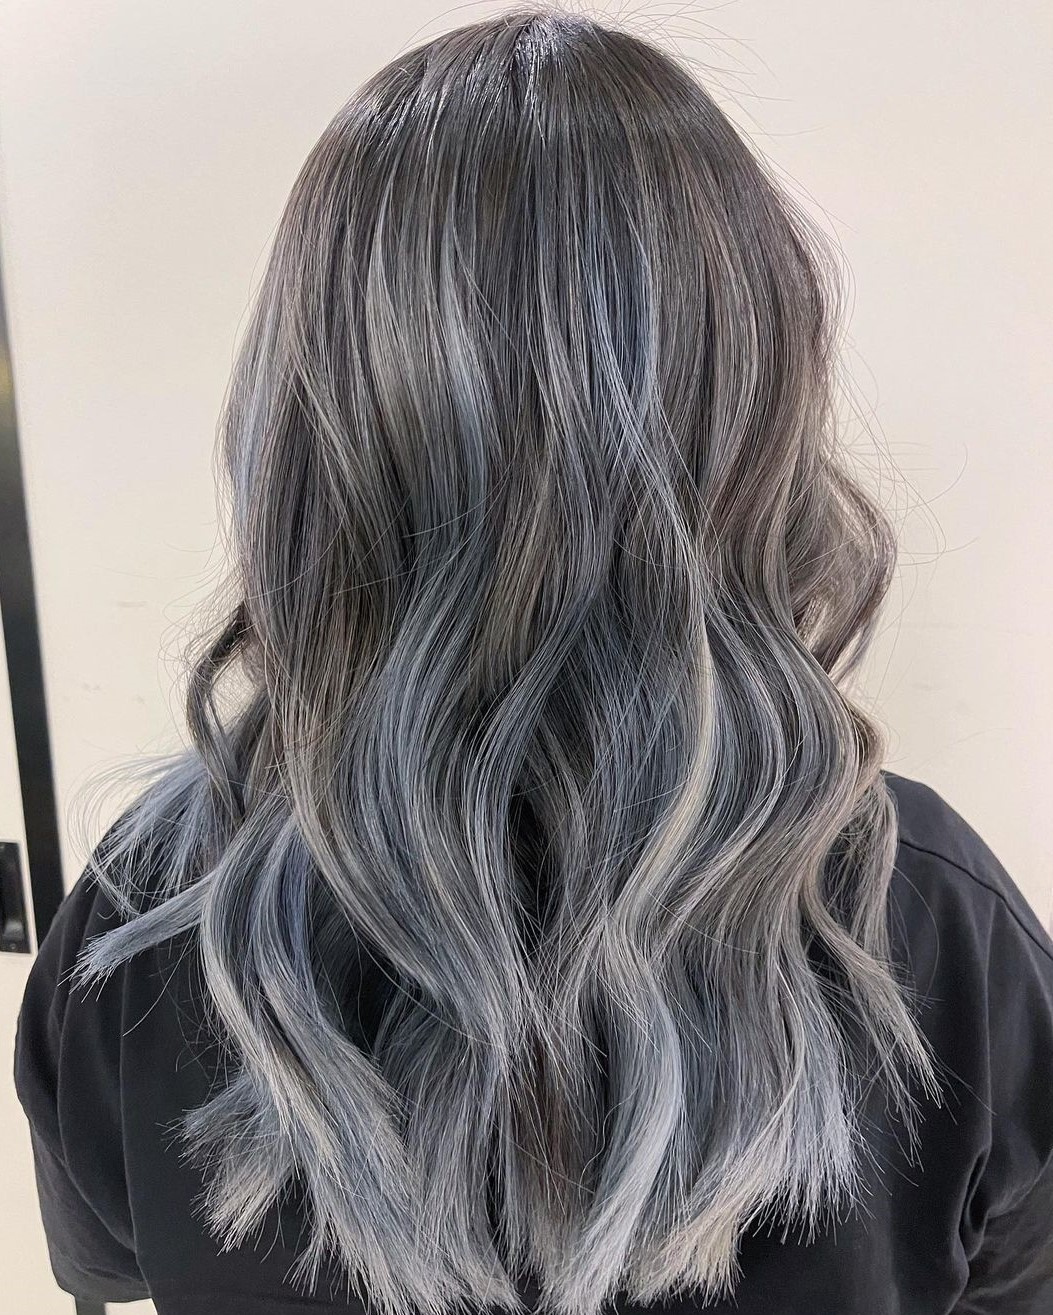 Brown Hair with Silver and Blue Highlights